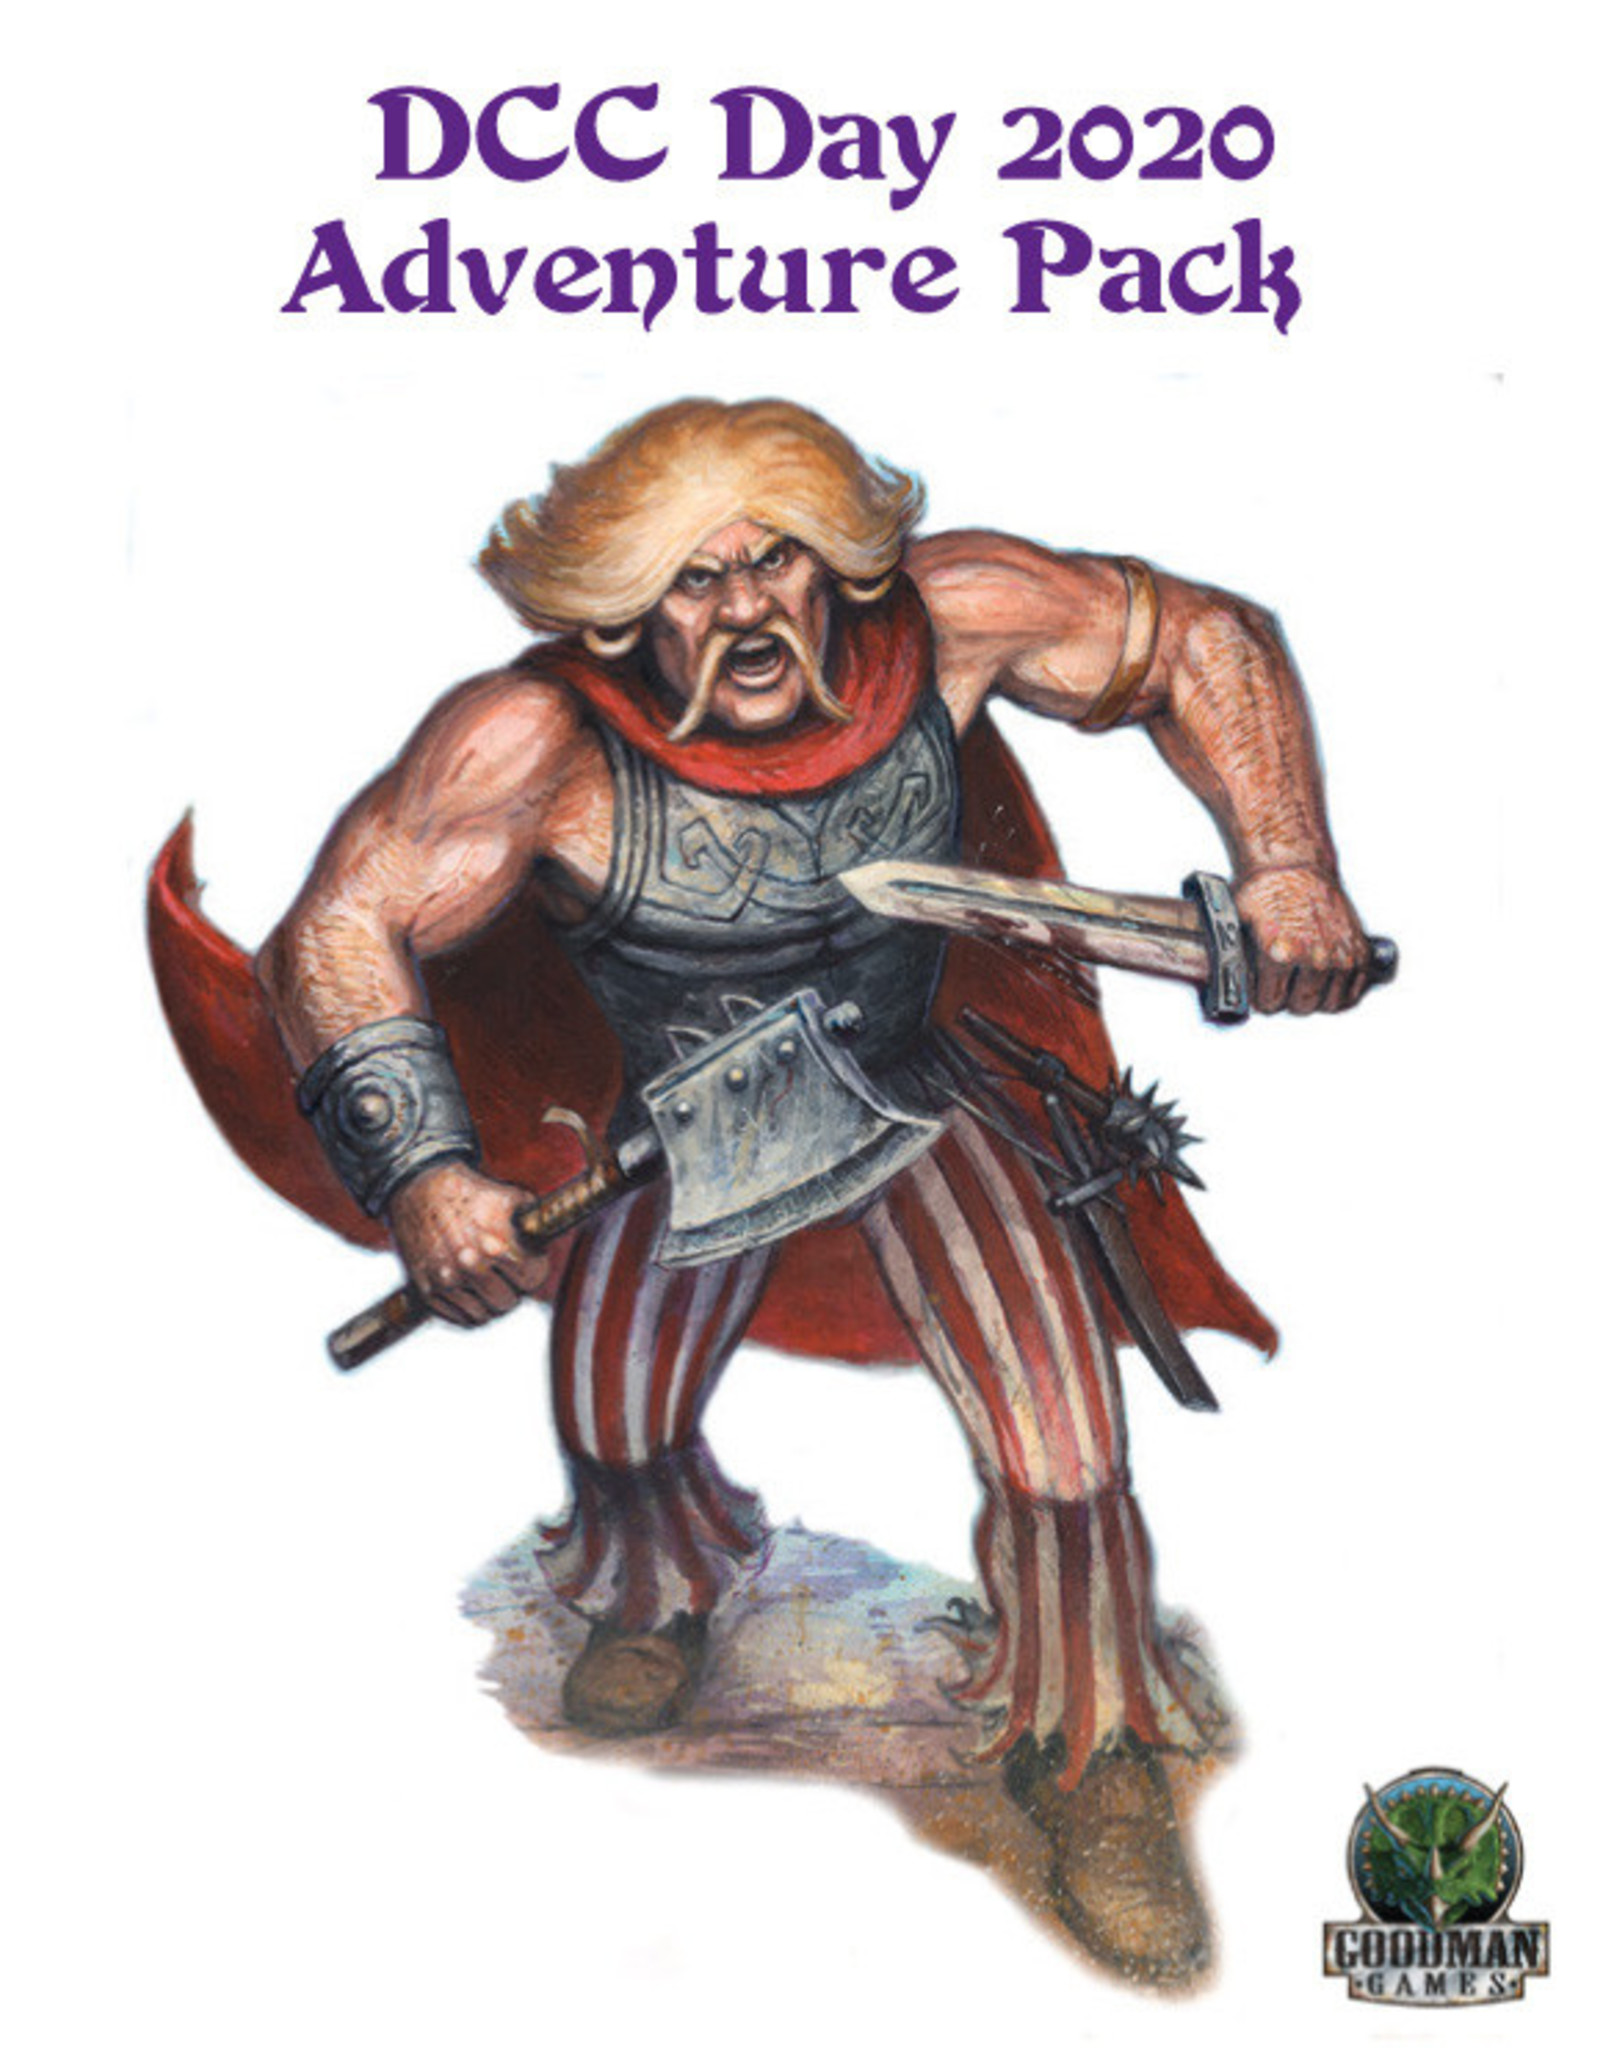 Goodman Games Dungeon Crawl Classics: DCC Day 2020 Adventure Pack